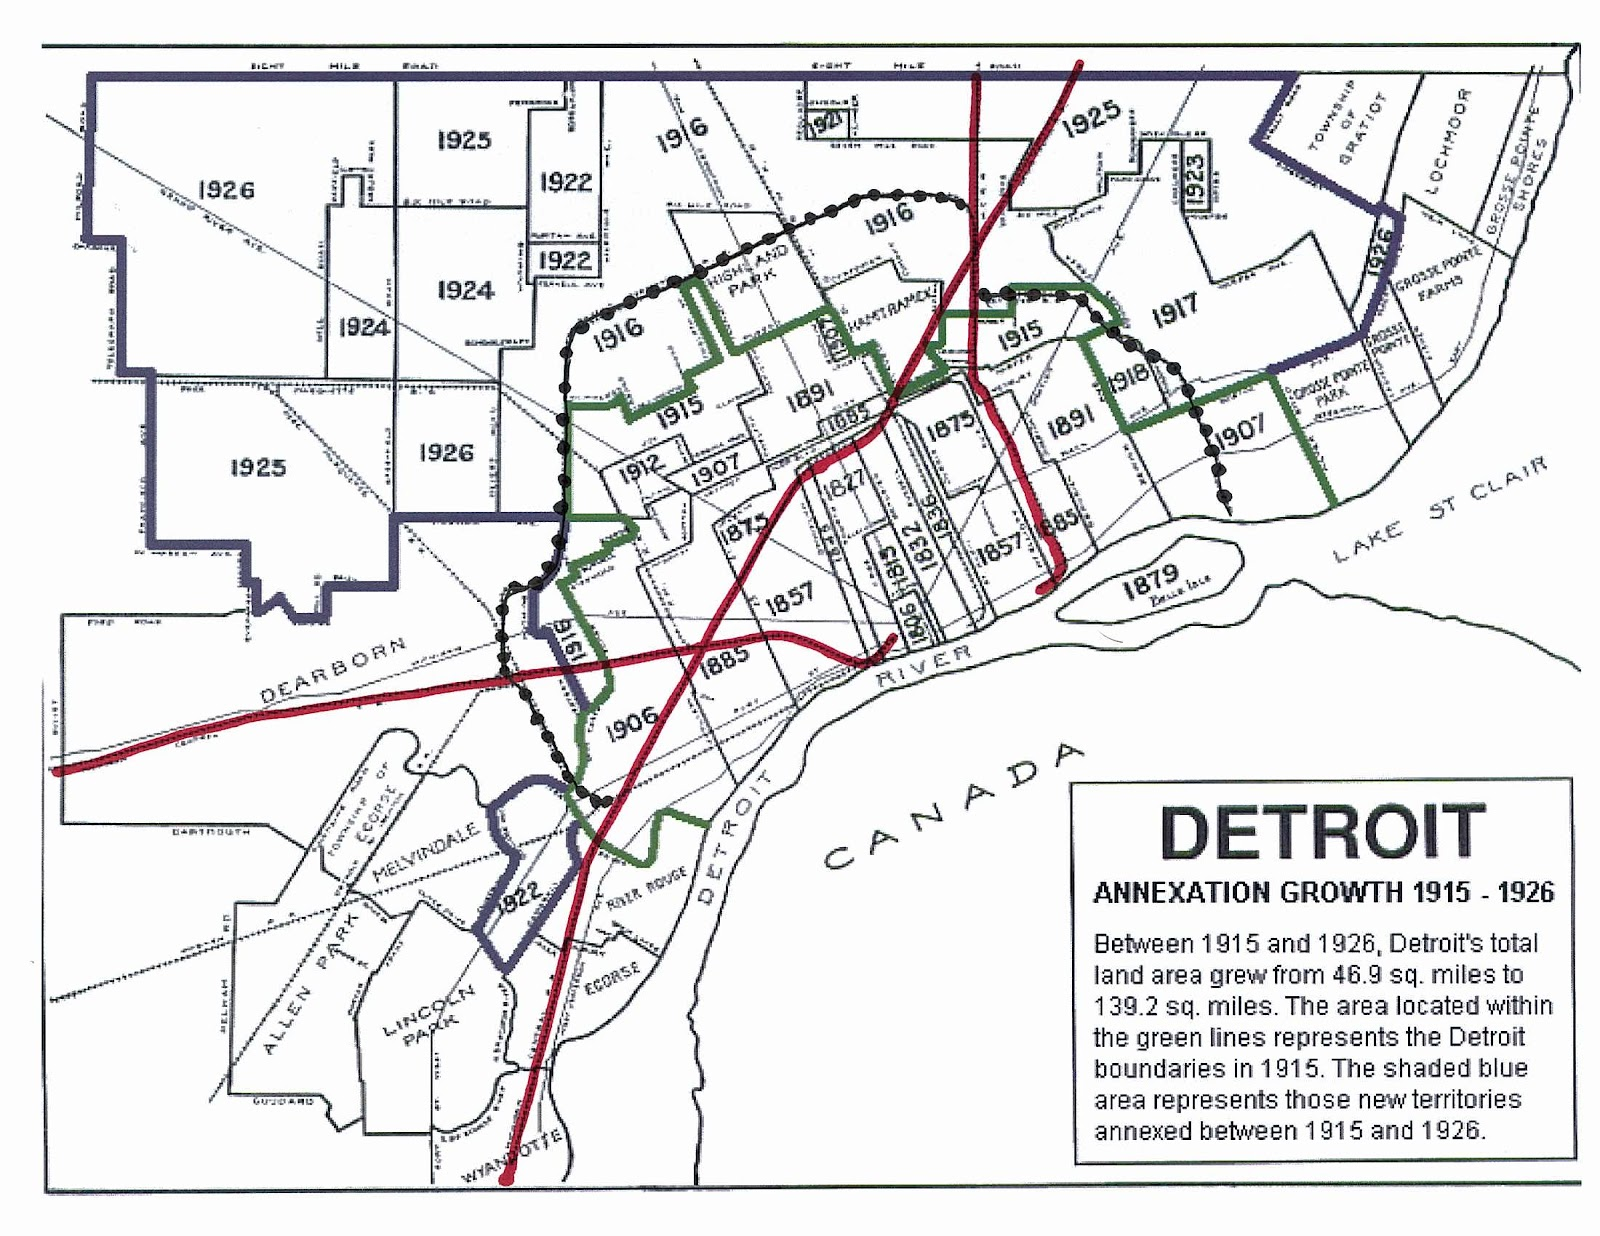 the dtr was constructed between 1904 and 1911 the line is illustrated on the following map with a dotted black line